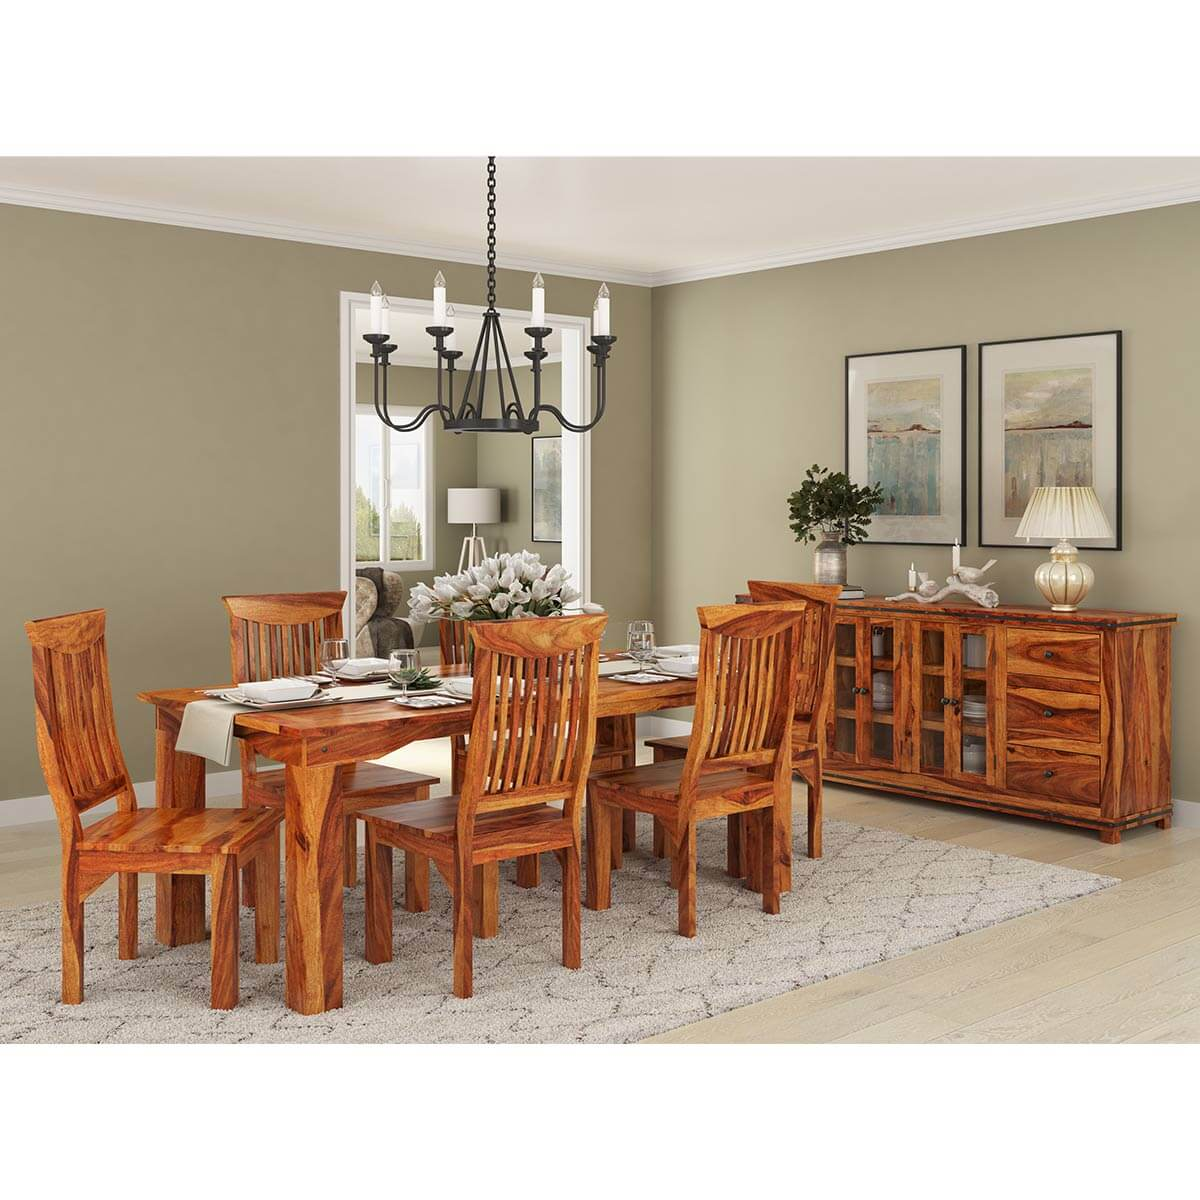 Idaho Modern Rustic Solid Wood Rectangle 9 Piece Dining Room Set